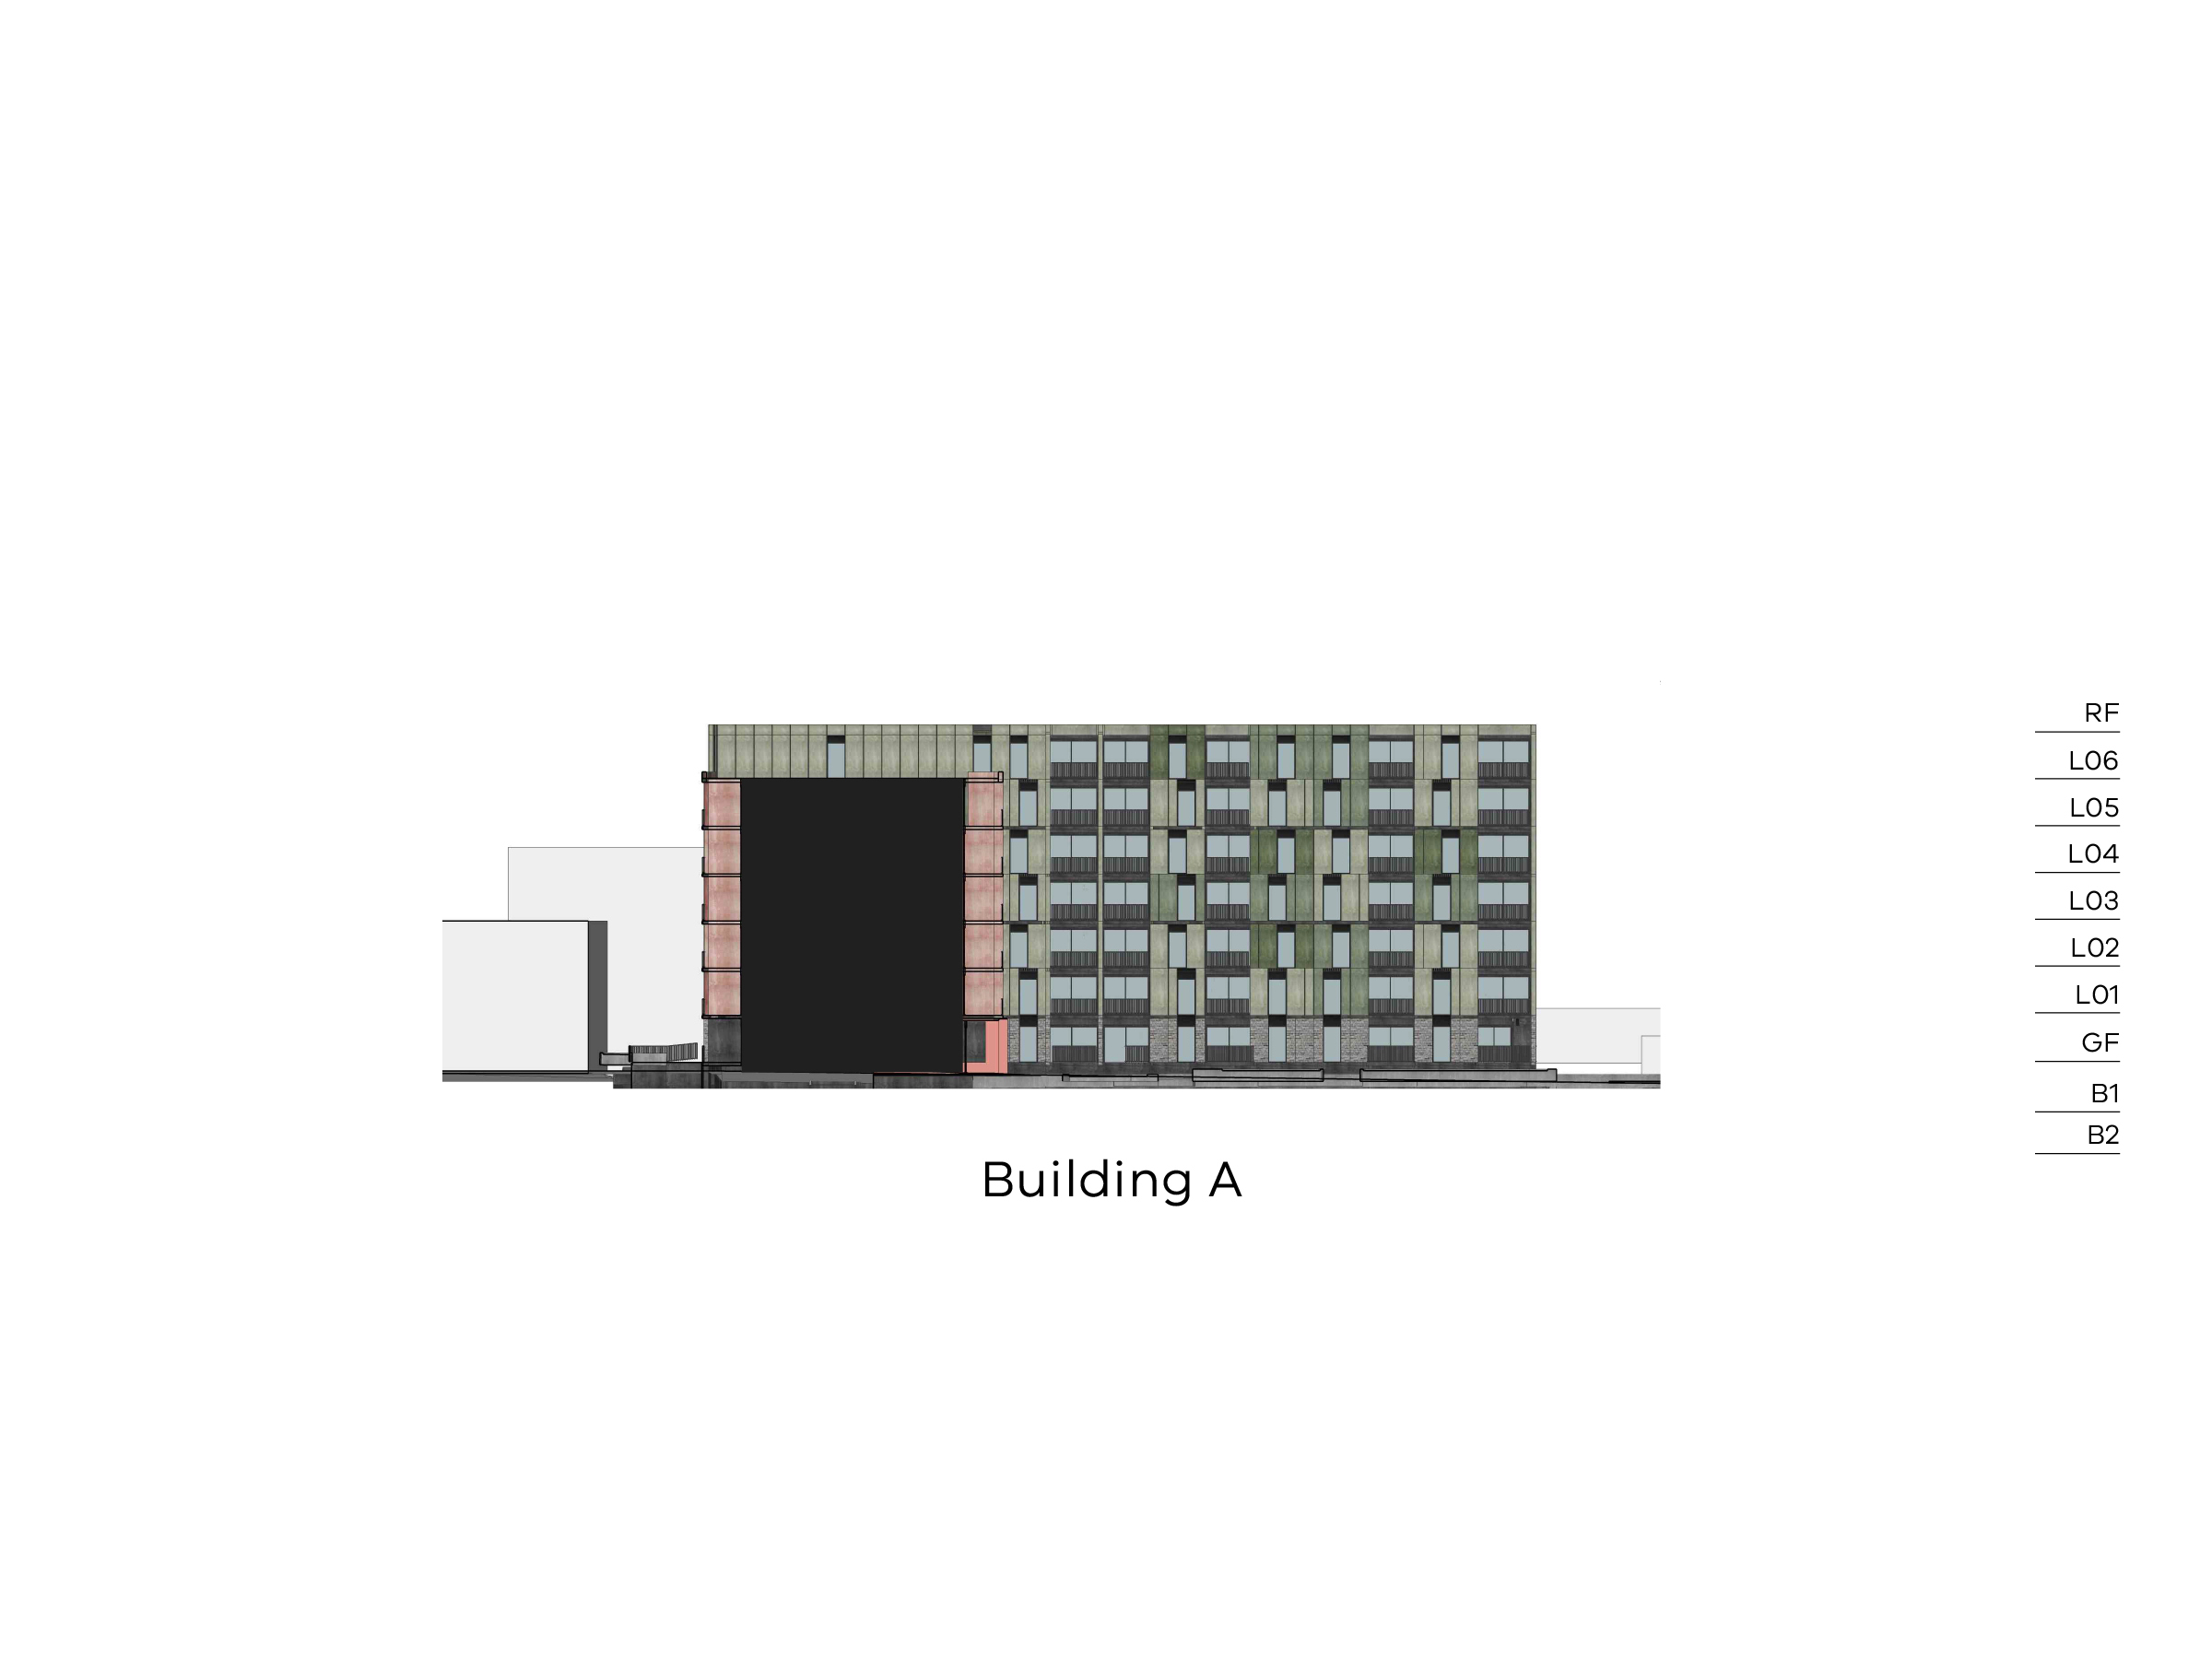 Diagram showing the heights of building A as seen from the walkway on site looking towards Bangs Street. Building A has 2 basement levels, a ground level, level 1-6 and a flat roof.